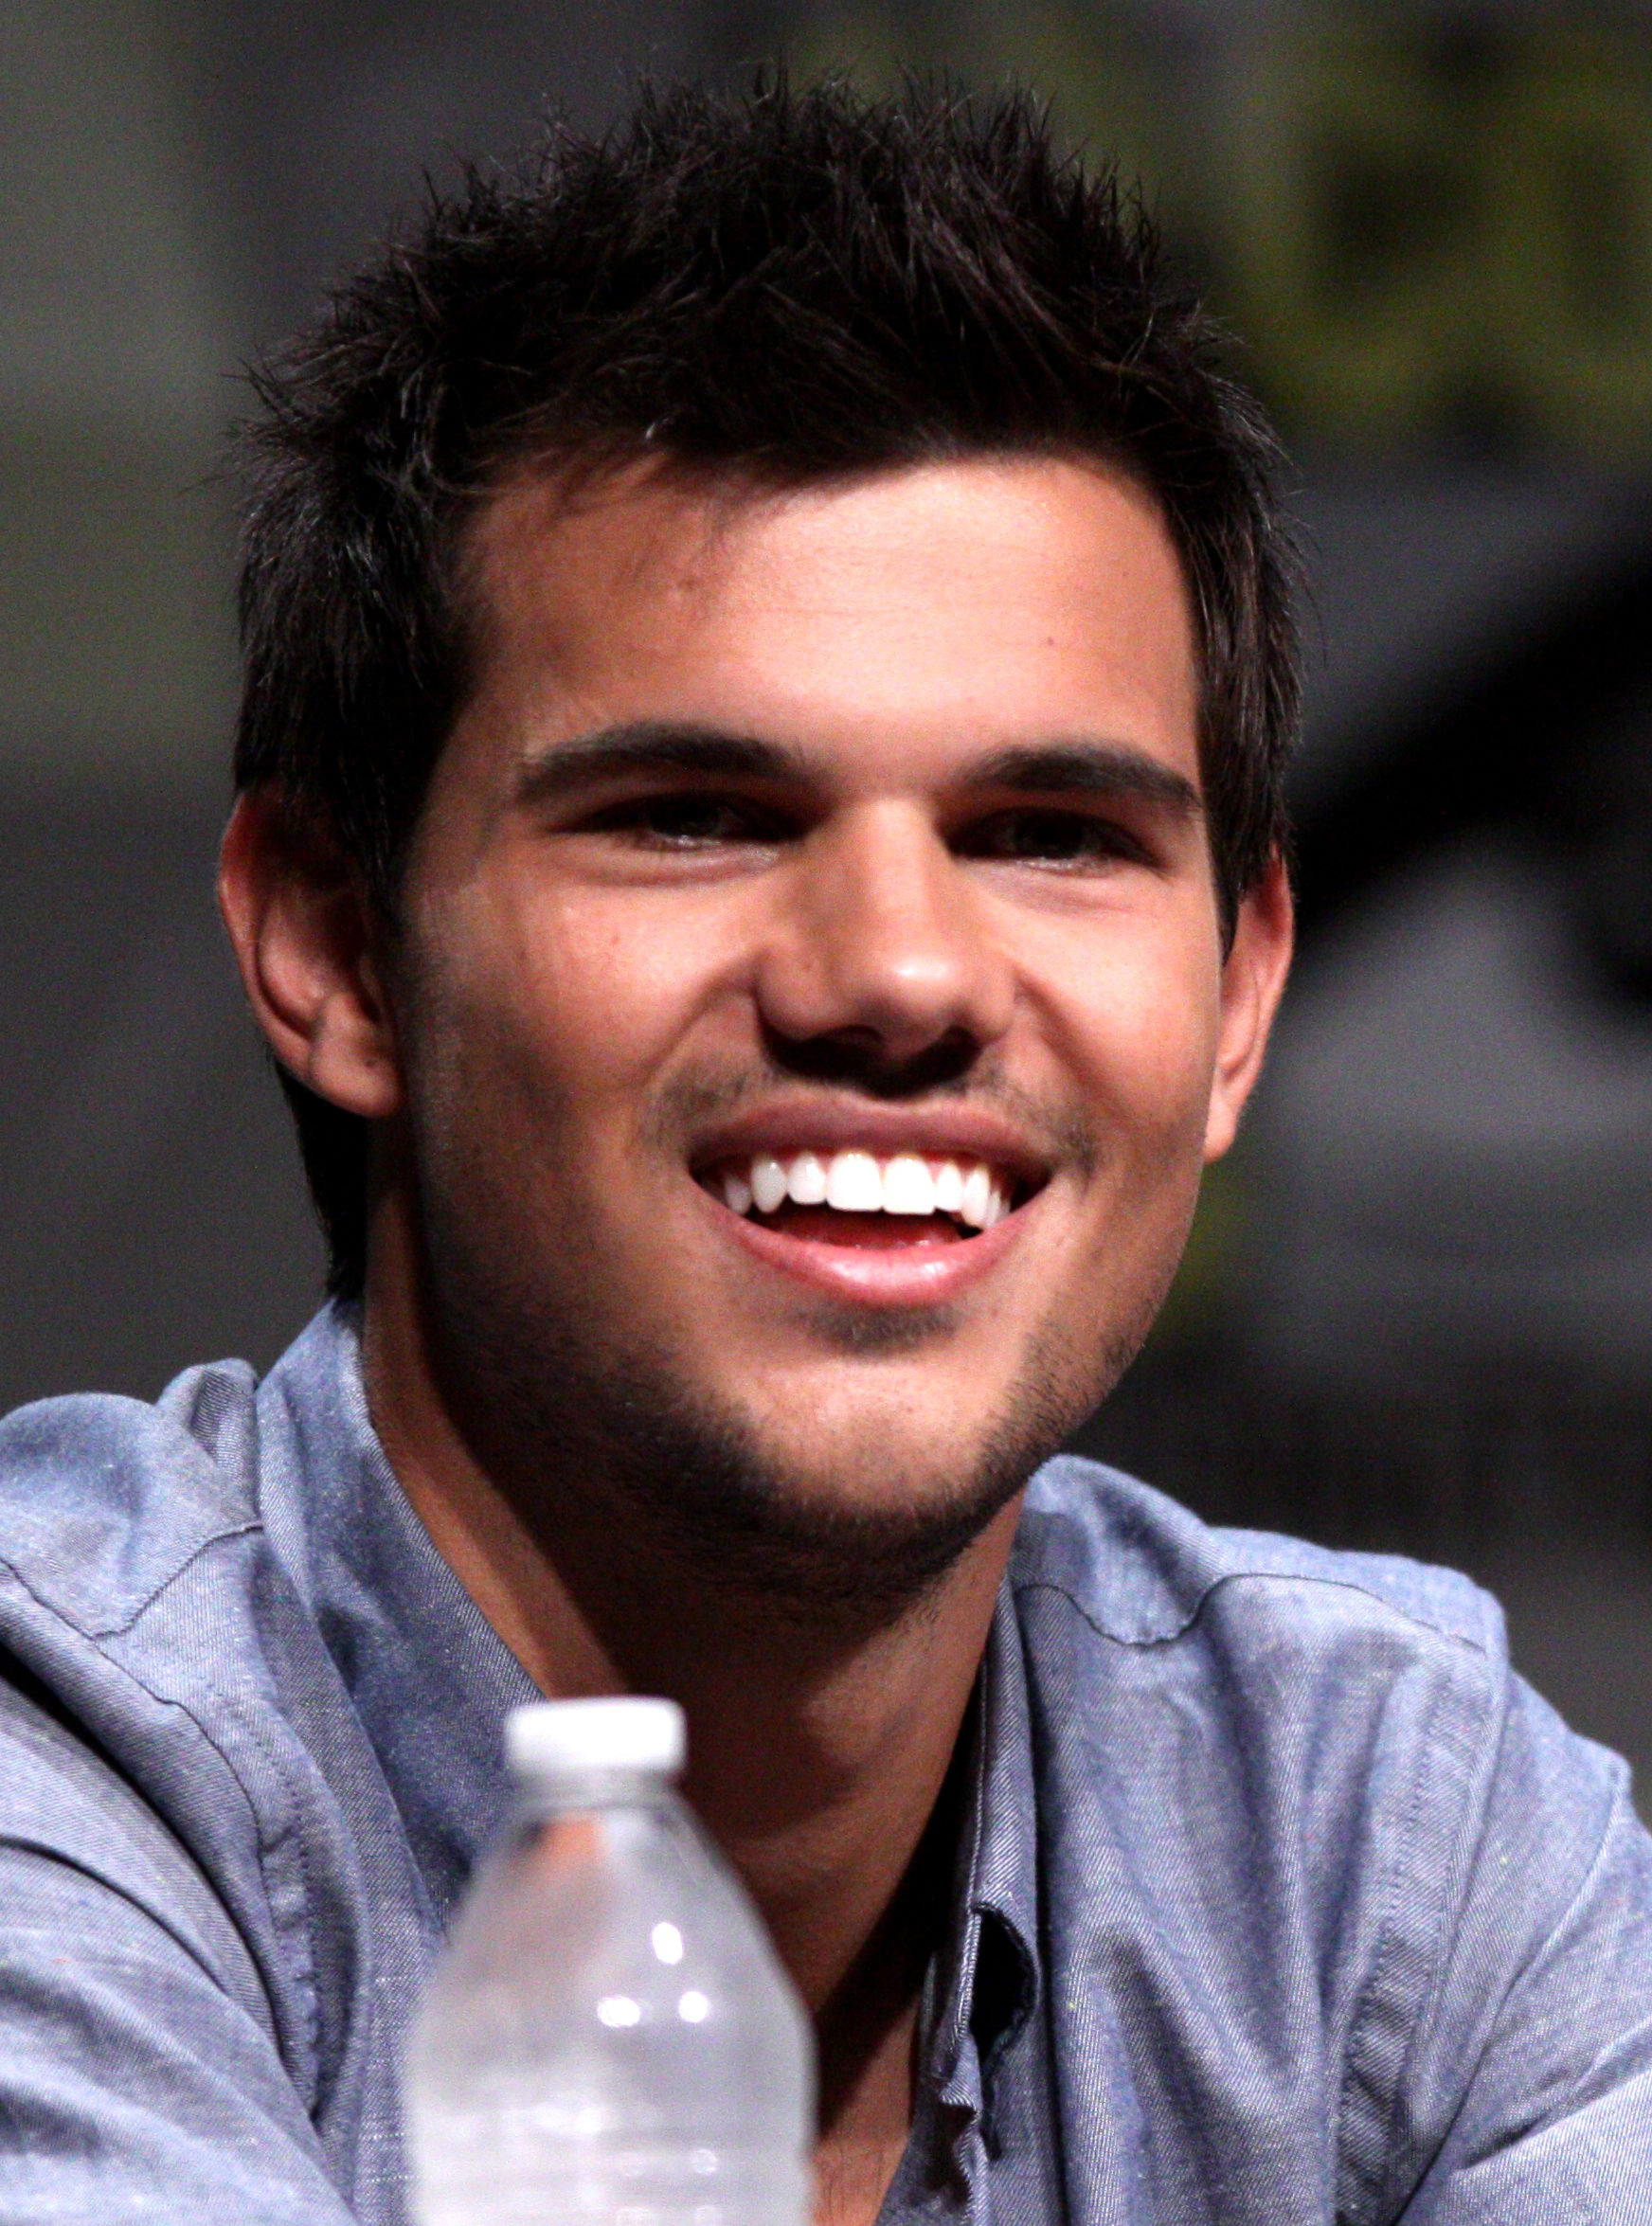 Photo of Taylor Lautner: American actor, voice actor, and model